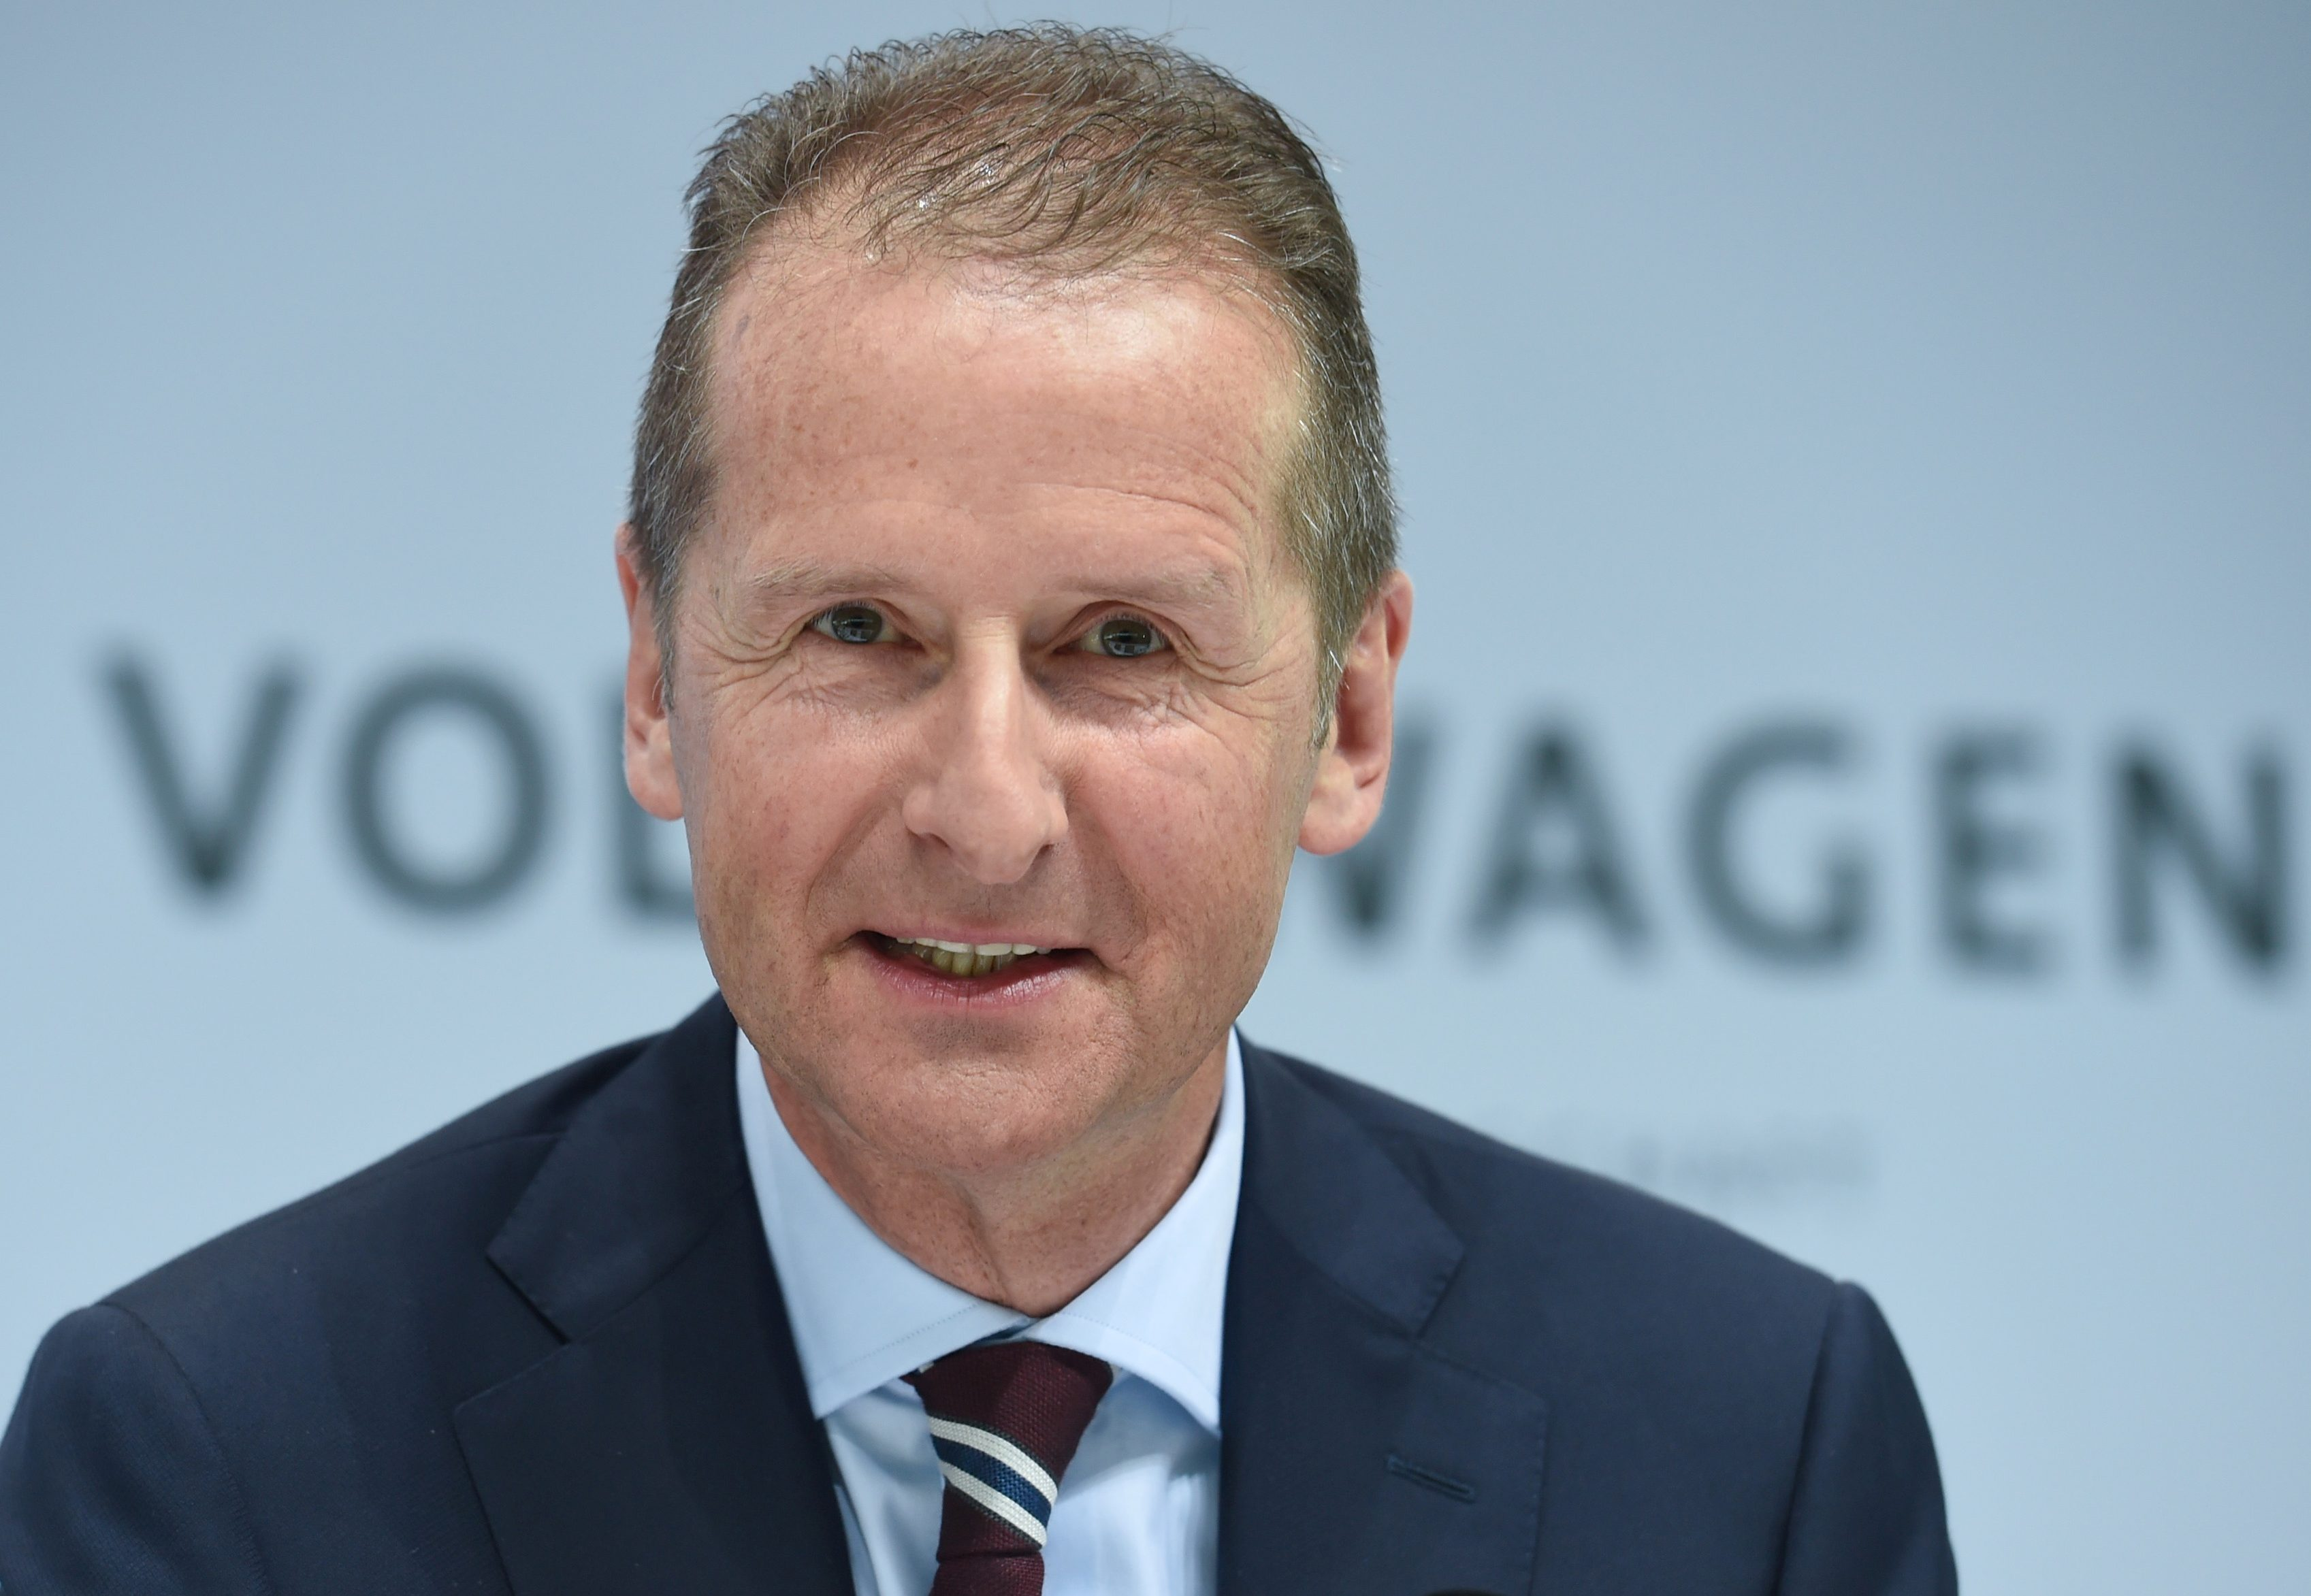 VW Group boss steps down, Herbert Diess steps up as new chairman